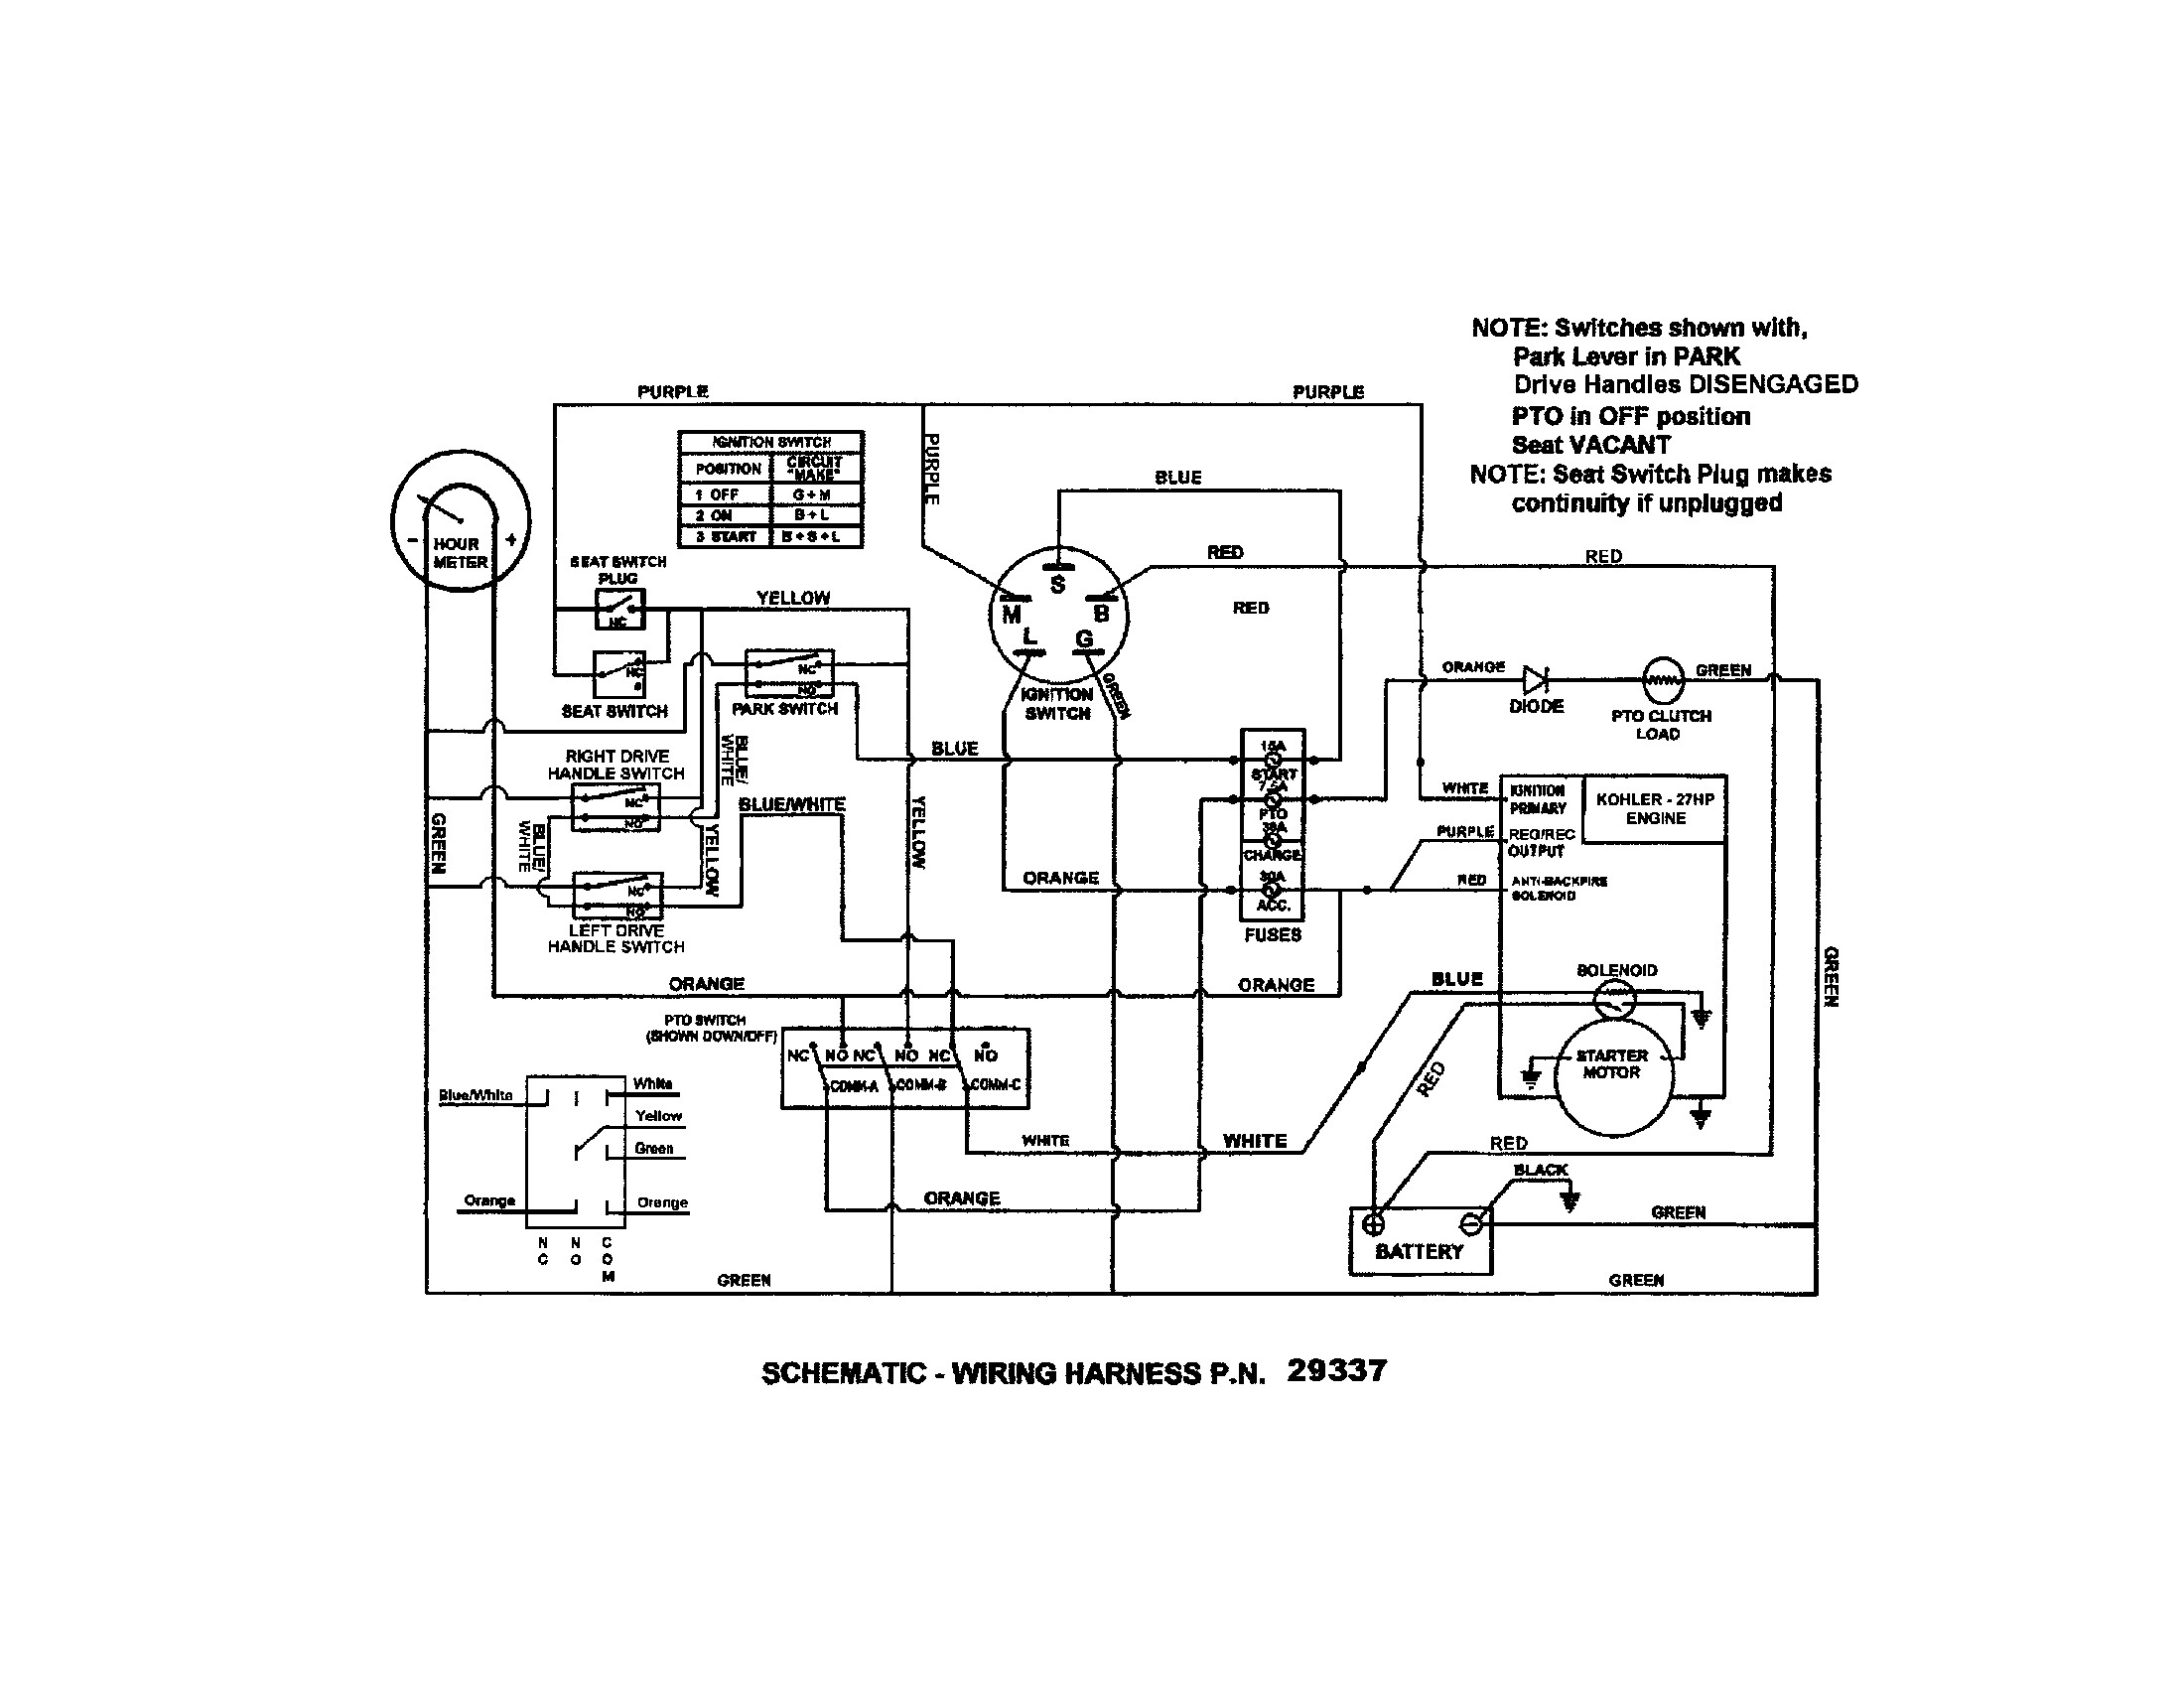 ... Wiring Diagram Schematic Diagrams Source · diagram of lawn mower engine  snapper model nzm kwv lawn riding mower rh detoxicrecenze com Snapper